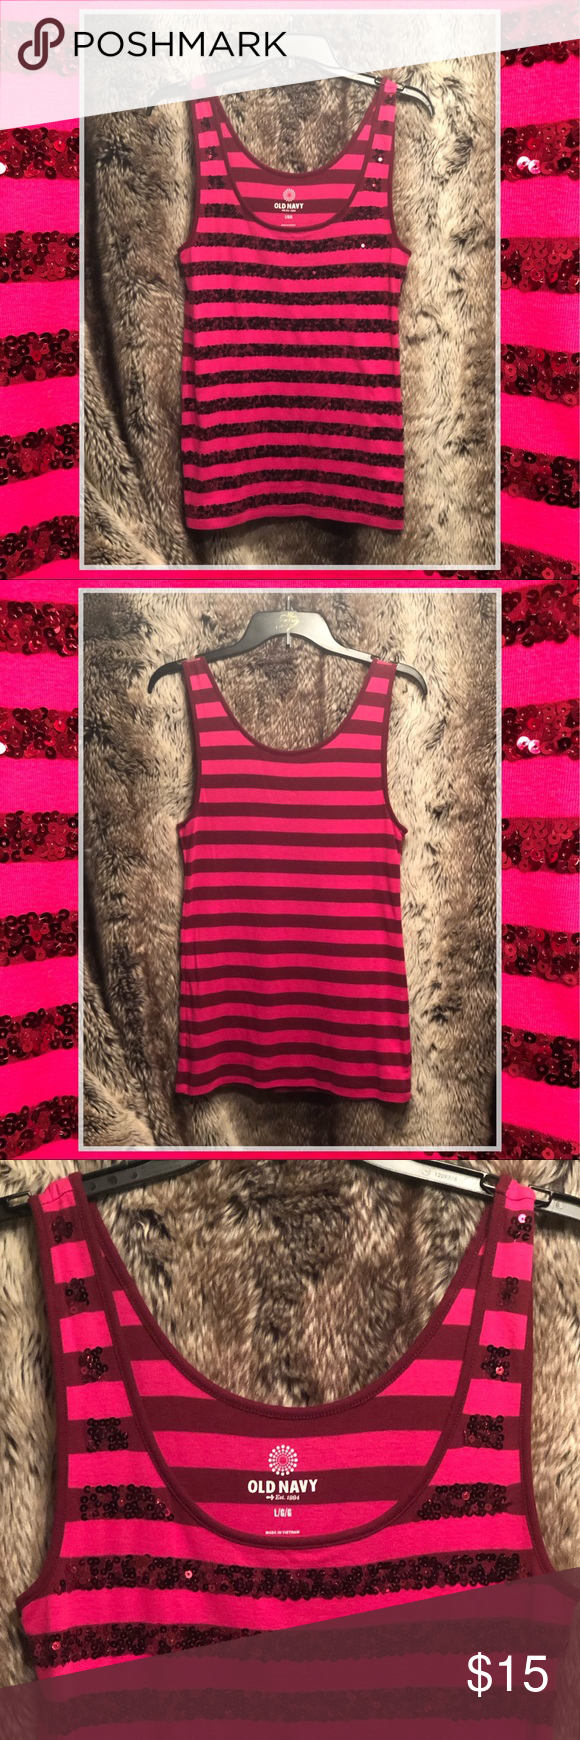 d81a85d226 Hot Pick Sequin Striped Tank Top Size L ▫️PRE-OWNED in EXCELLENT CONDITION  (Worn Once) ▫️Size Large ▫️Long Hot Pink Striped Tank Top w/Sequins on ...